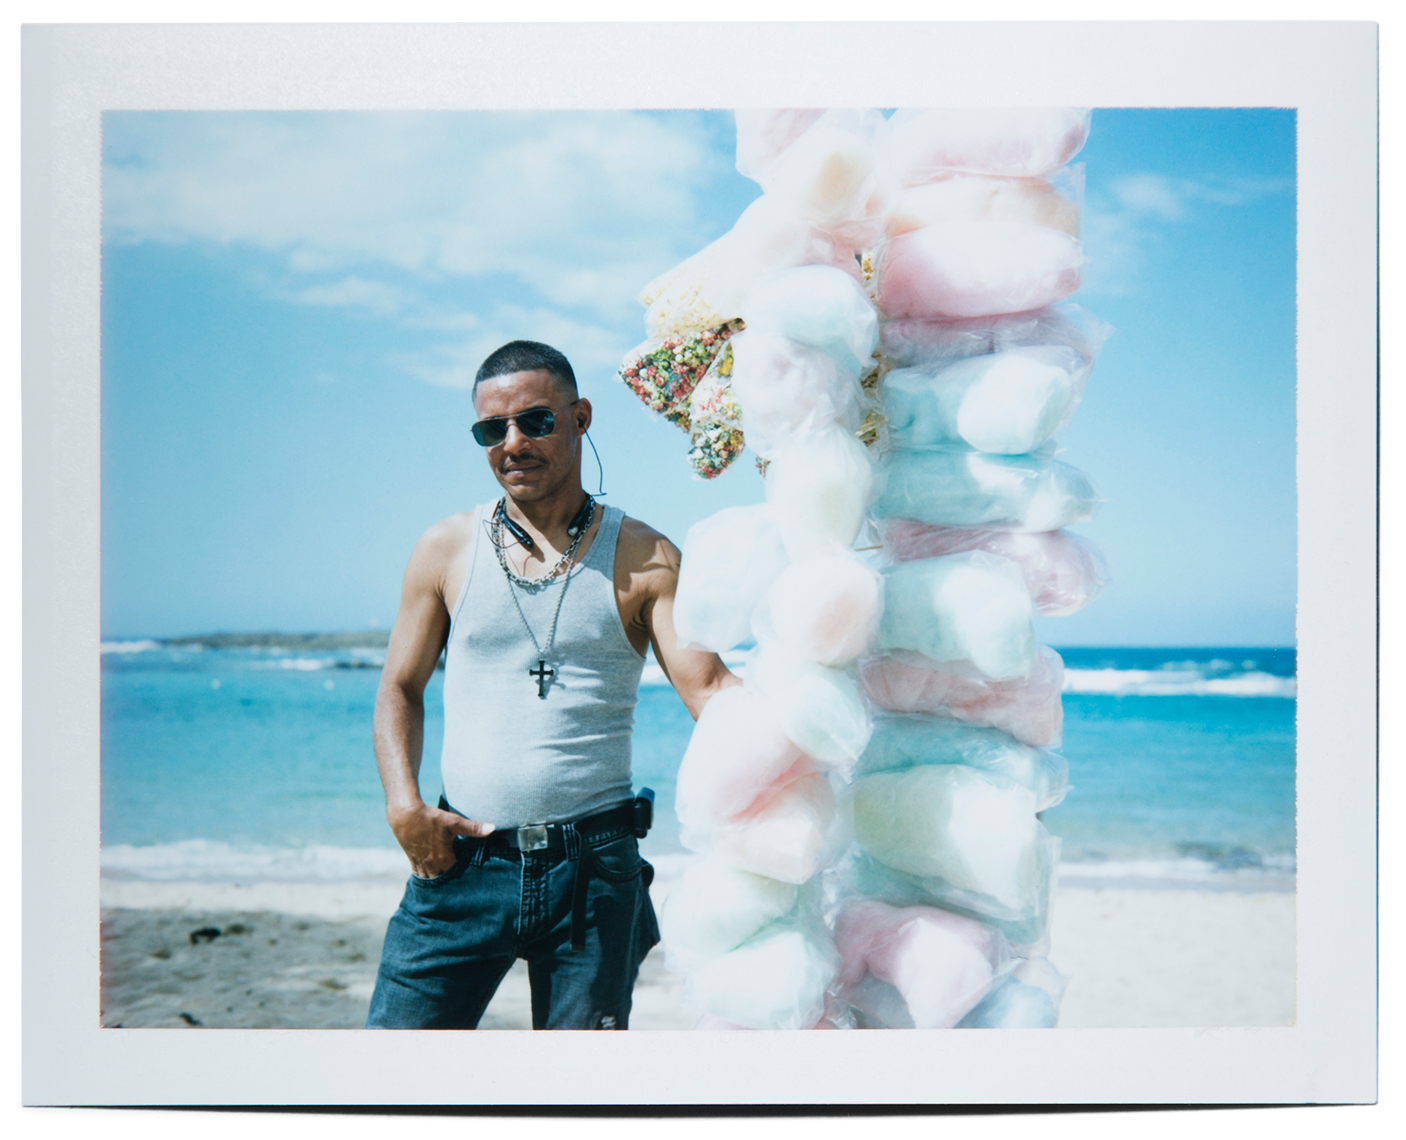 Sports Photographer STEVE BOYLE - Personal Travel Polaroids